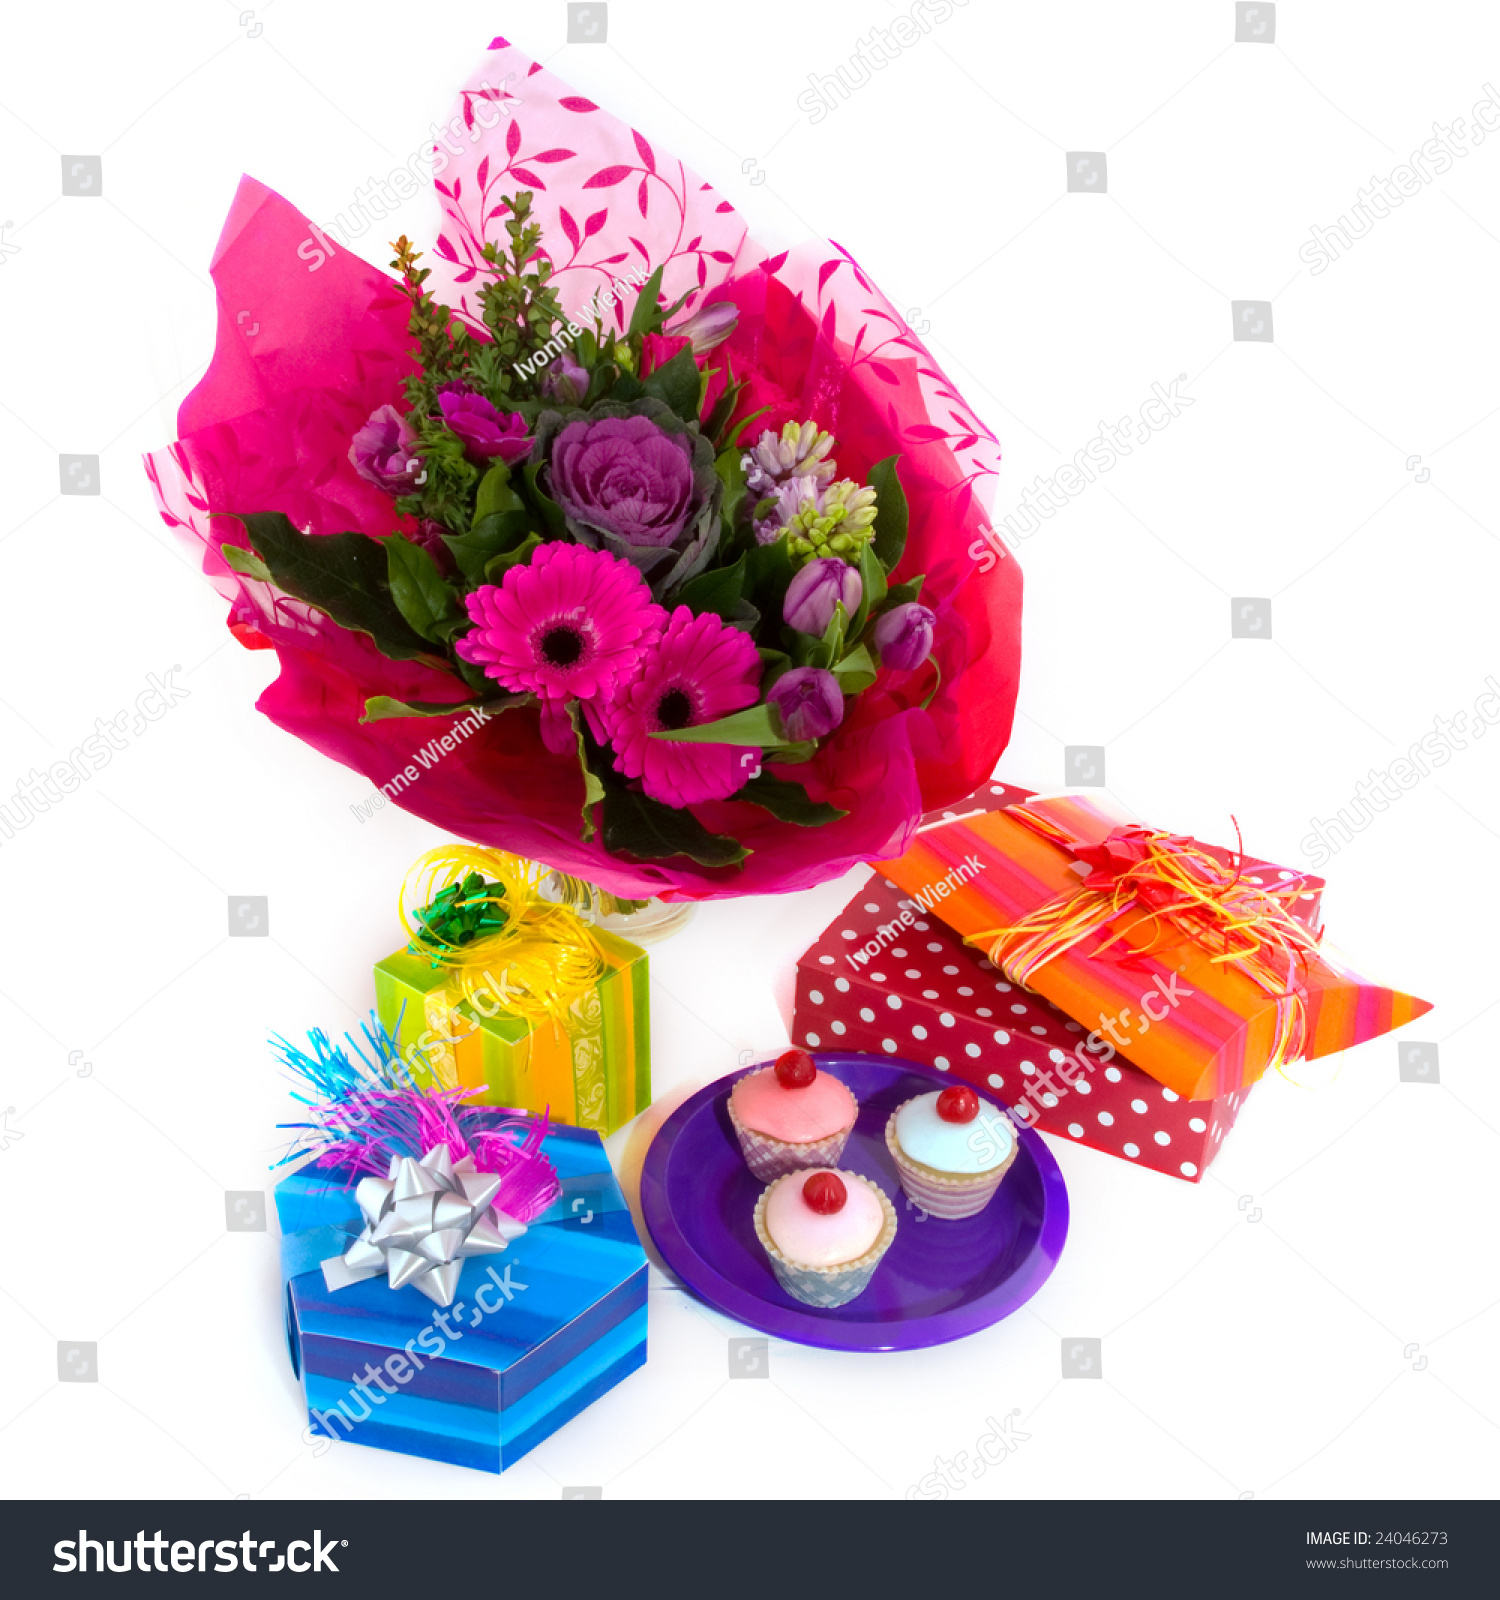 Happy birthday flowers surprises fancy cakes stock photo royalty happy birthday with flowers surprises and fancy cakes izmirmasajfo